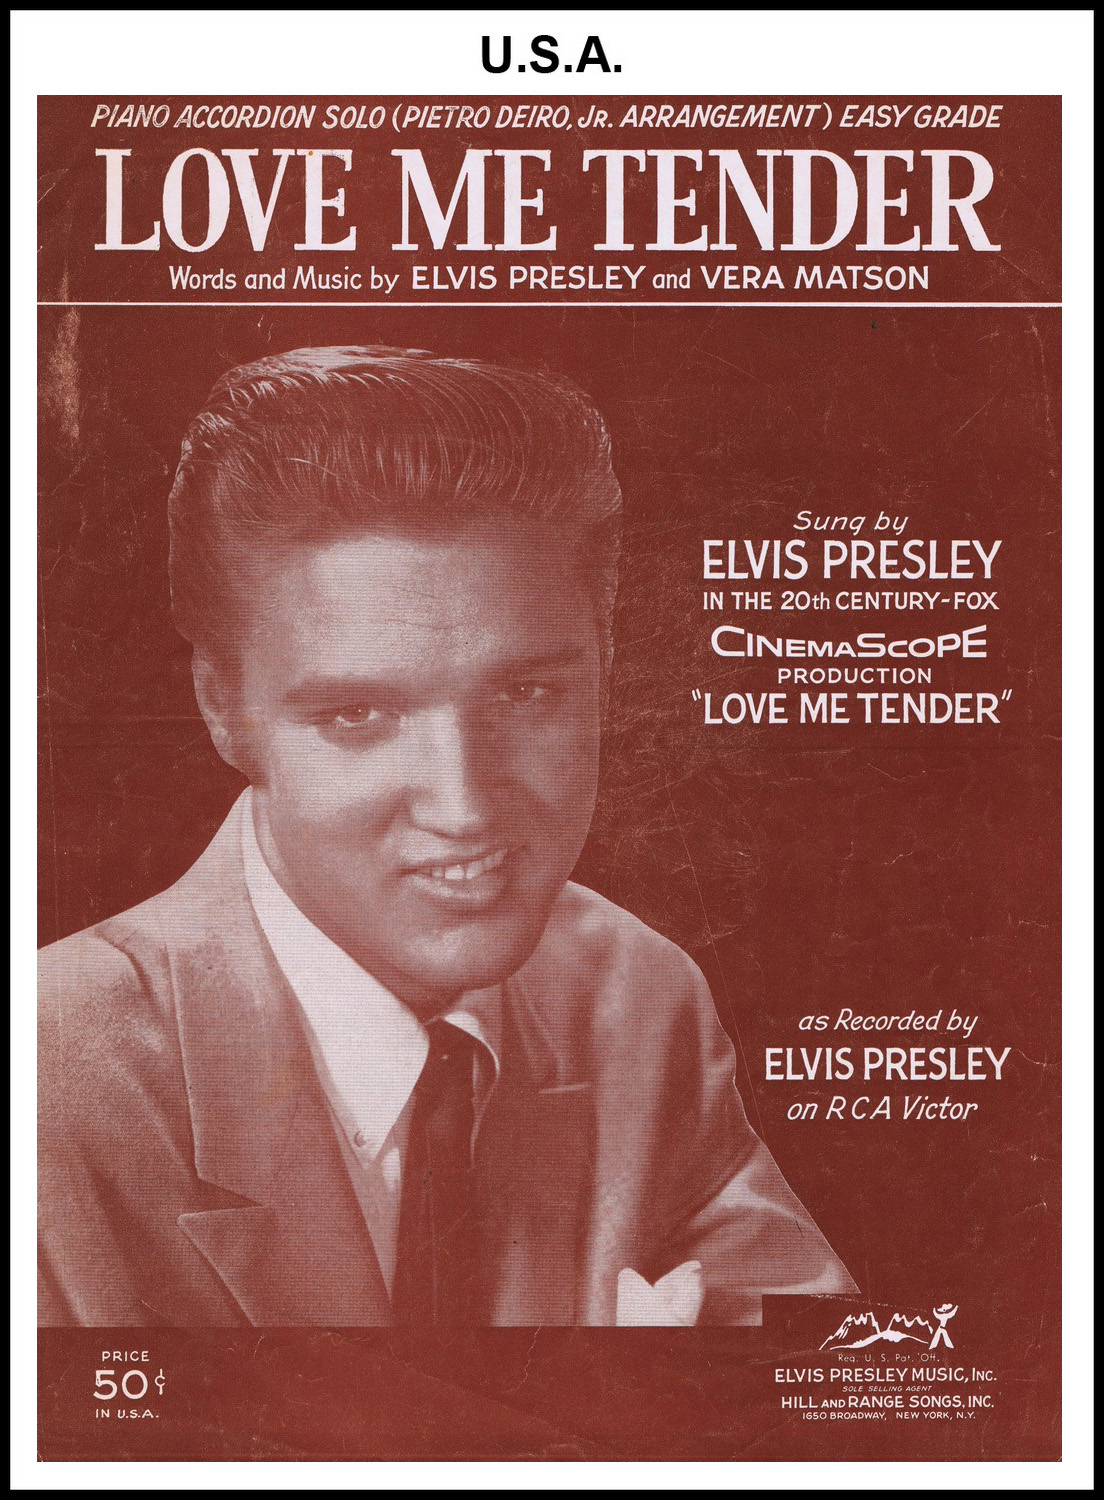 1956 - Love Me Tender - Piano (USA 50c) (CHRIS GILES COLLECTION)